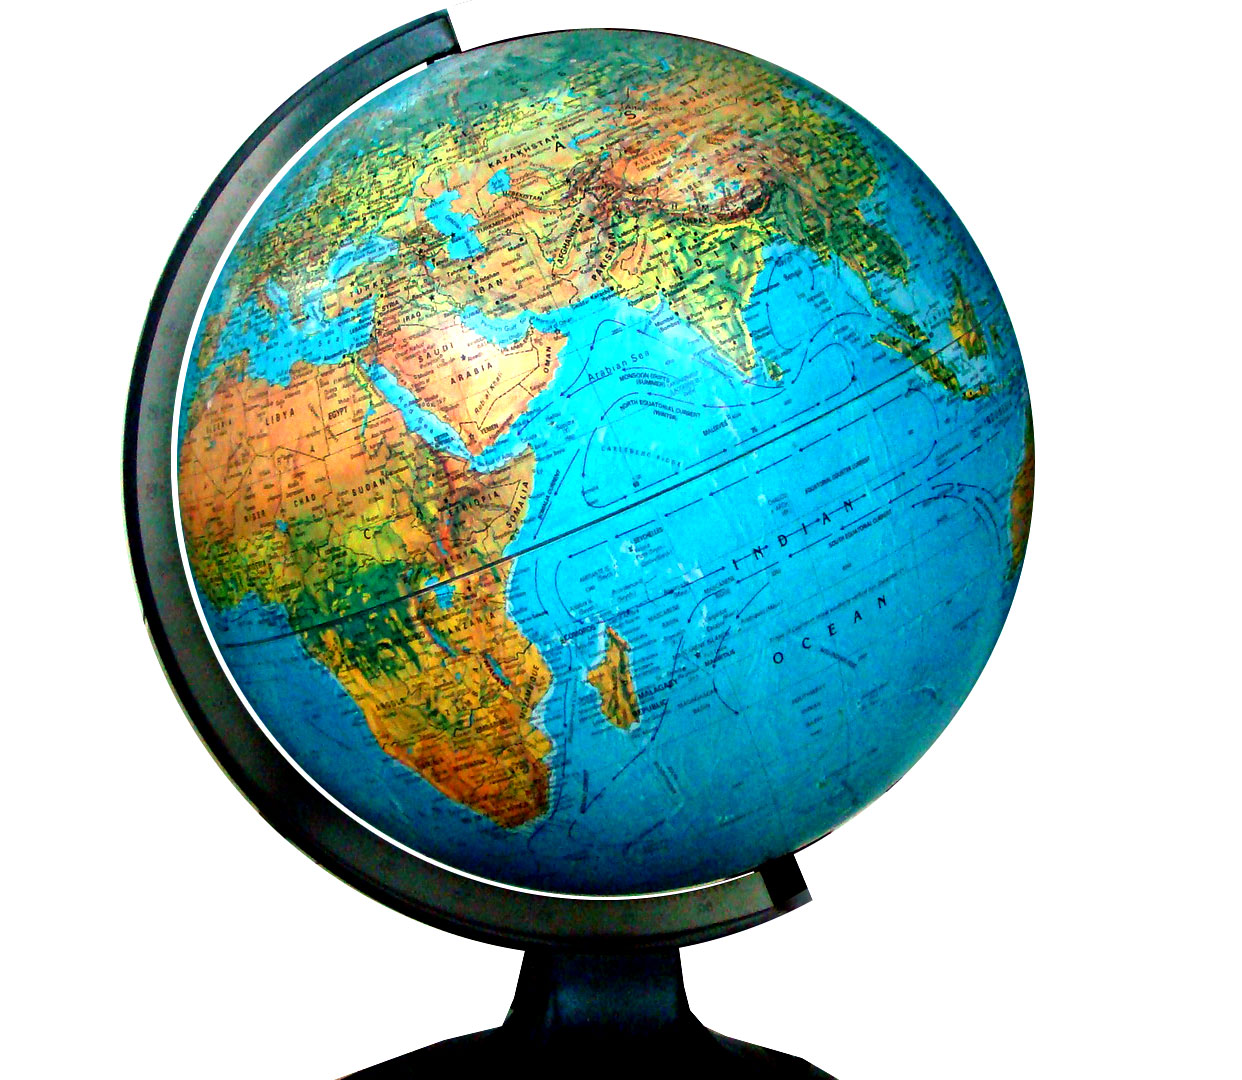 Pics Of Globe Free download best Pics Of Globe on ClipArtMagcom